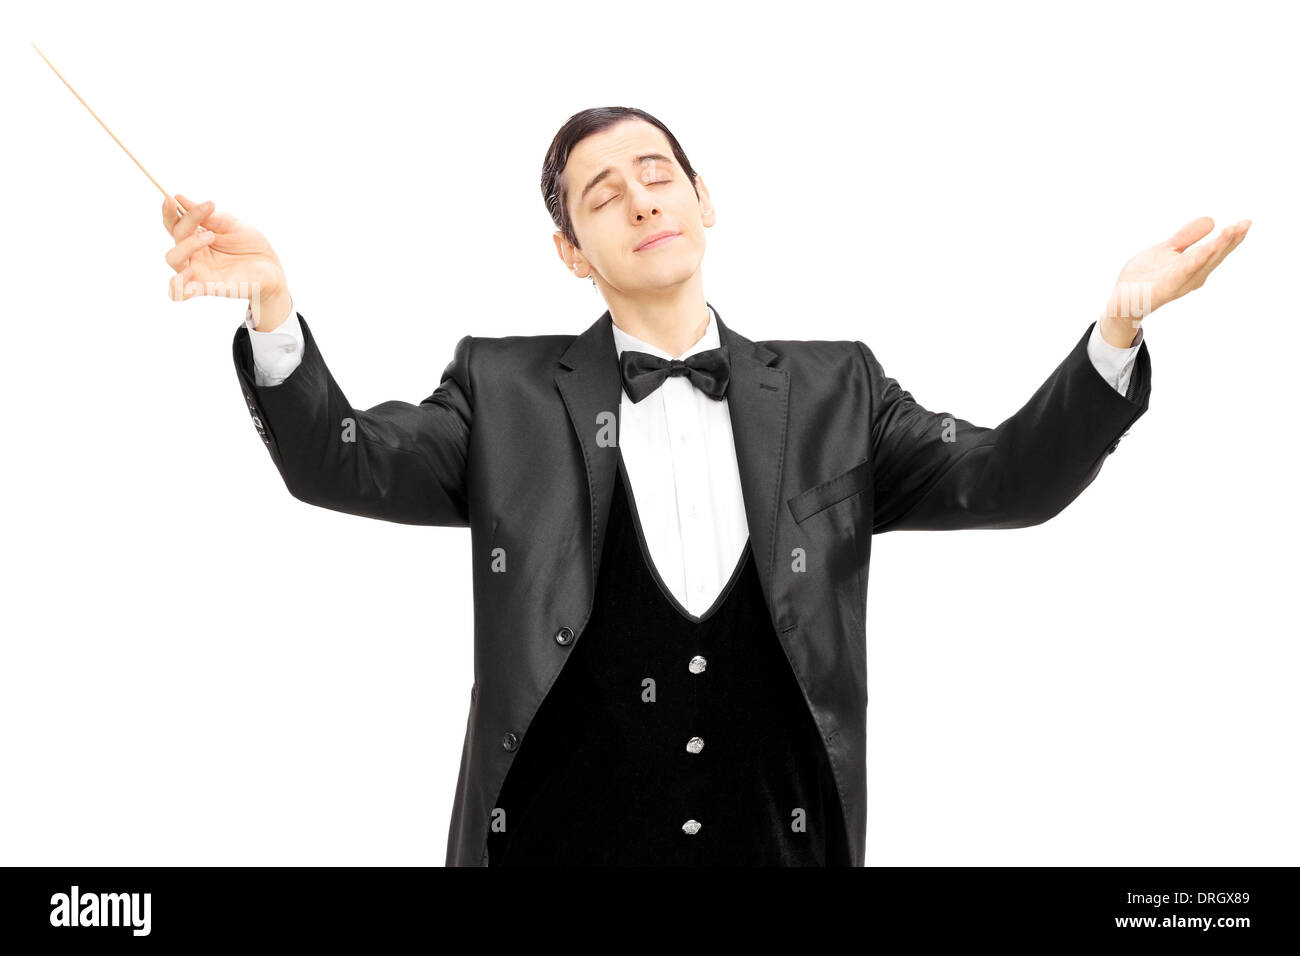 Male orchestra conductor directing with baton - Stock Image